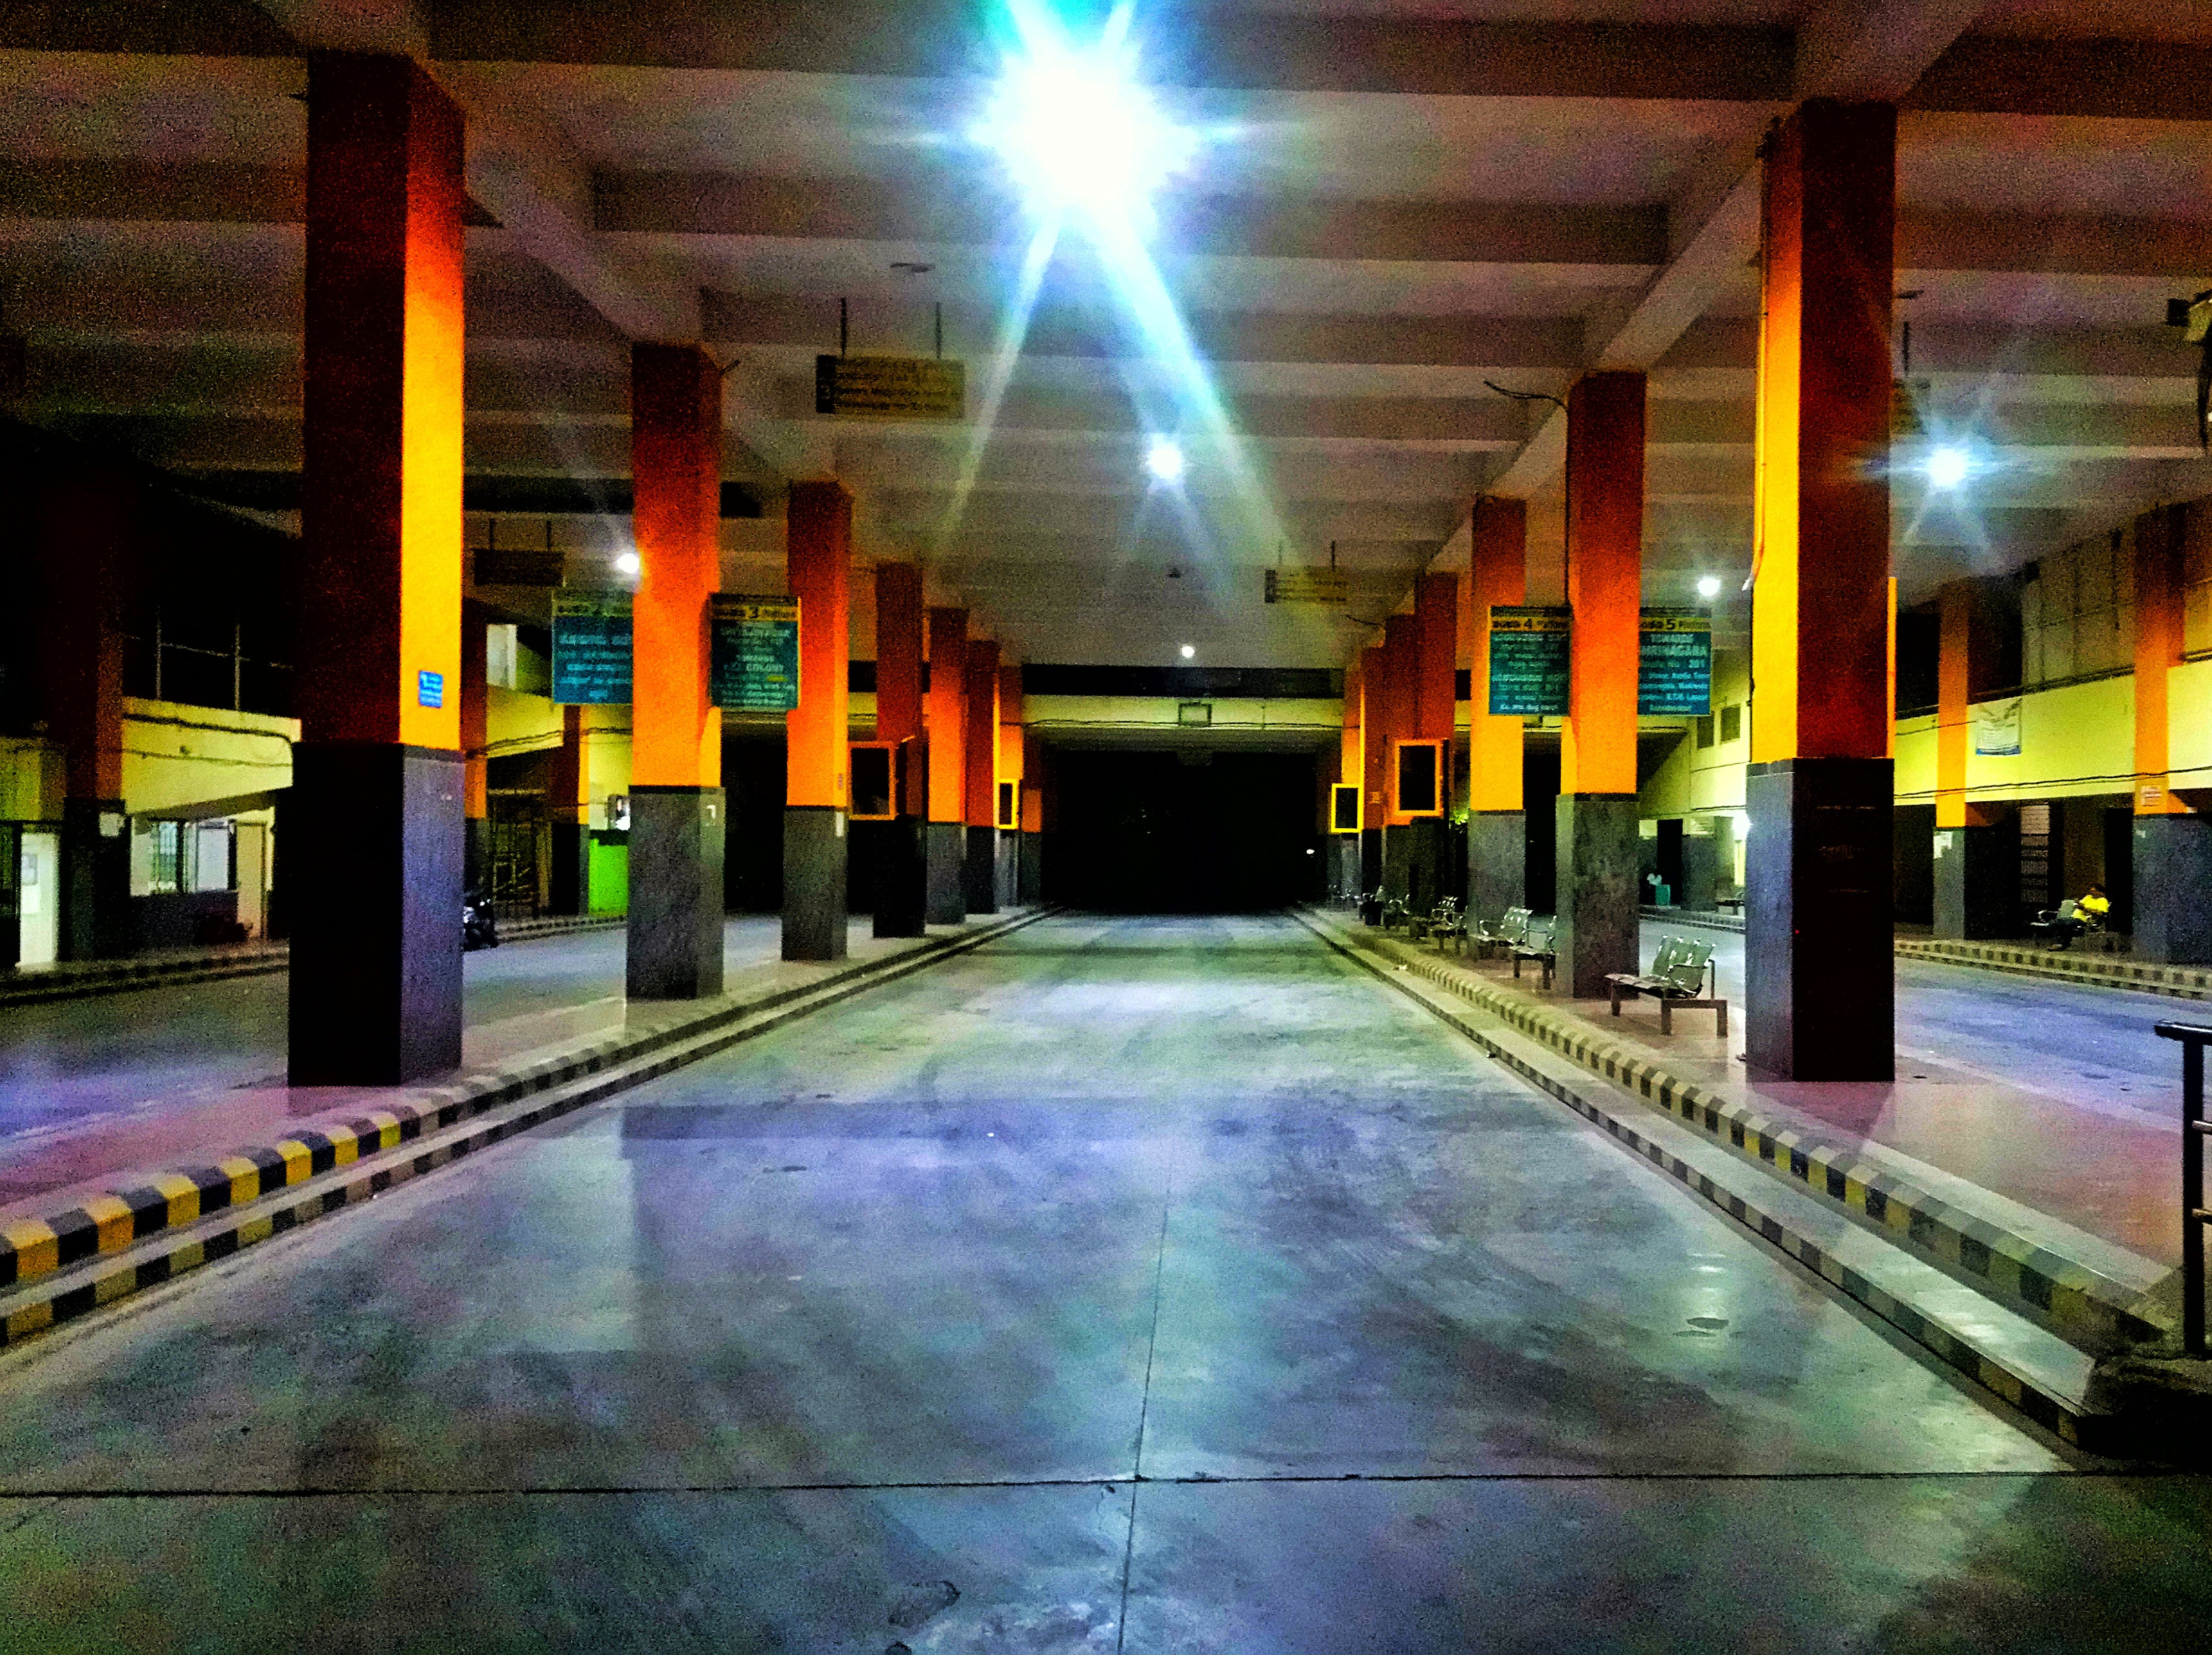 Free stock photo of bus station bus hall god road, road